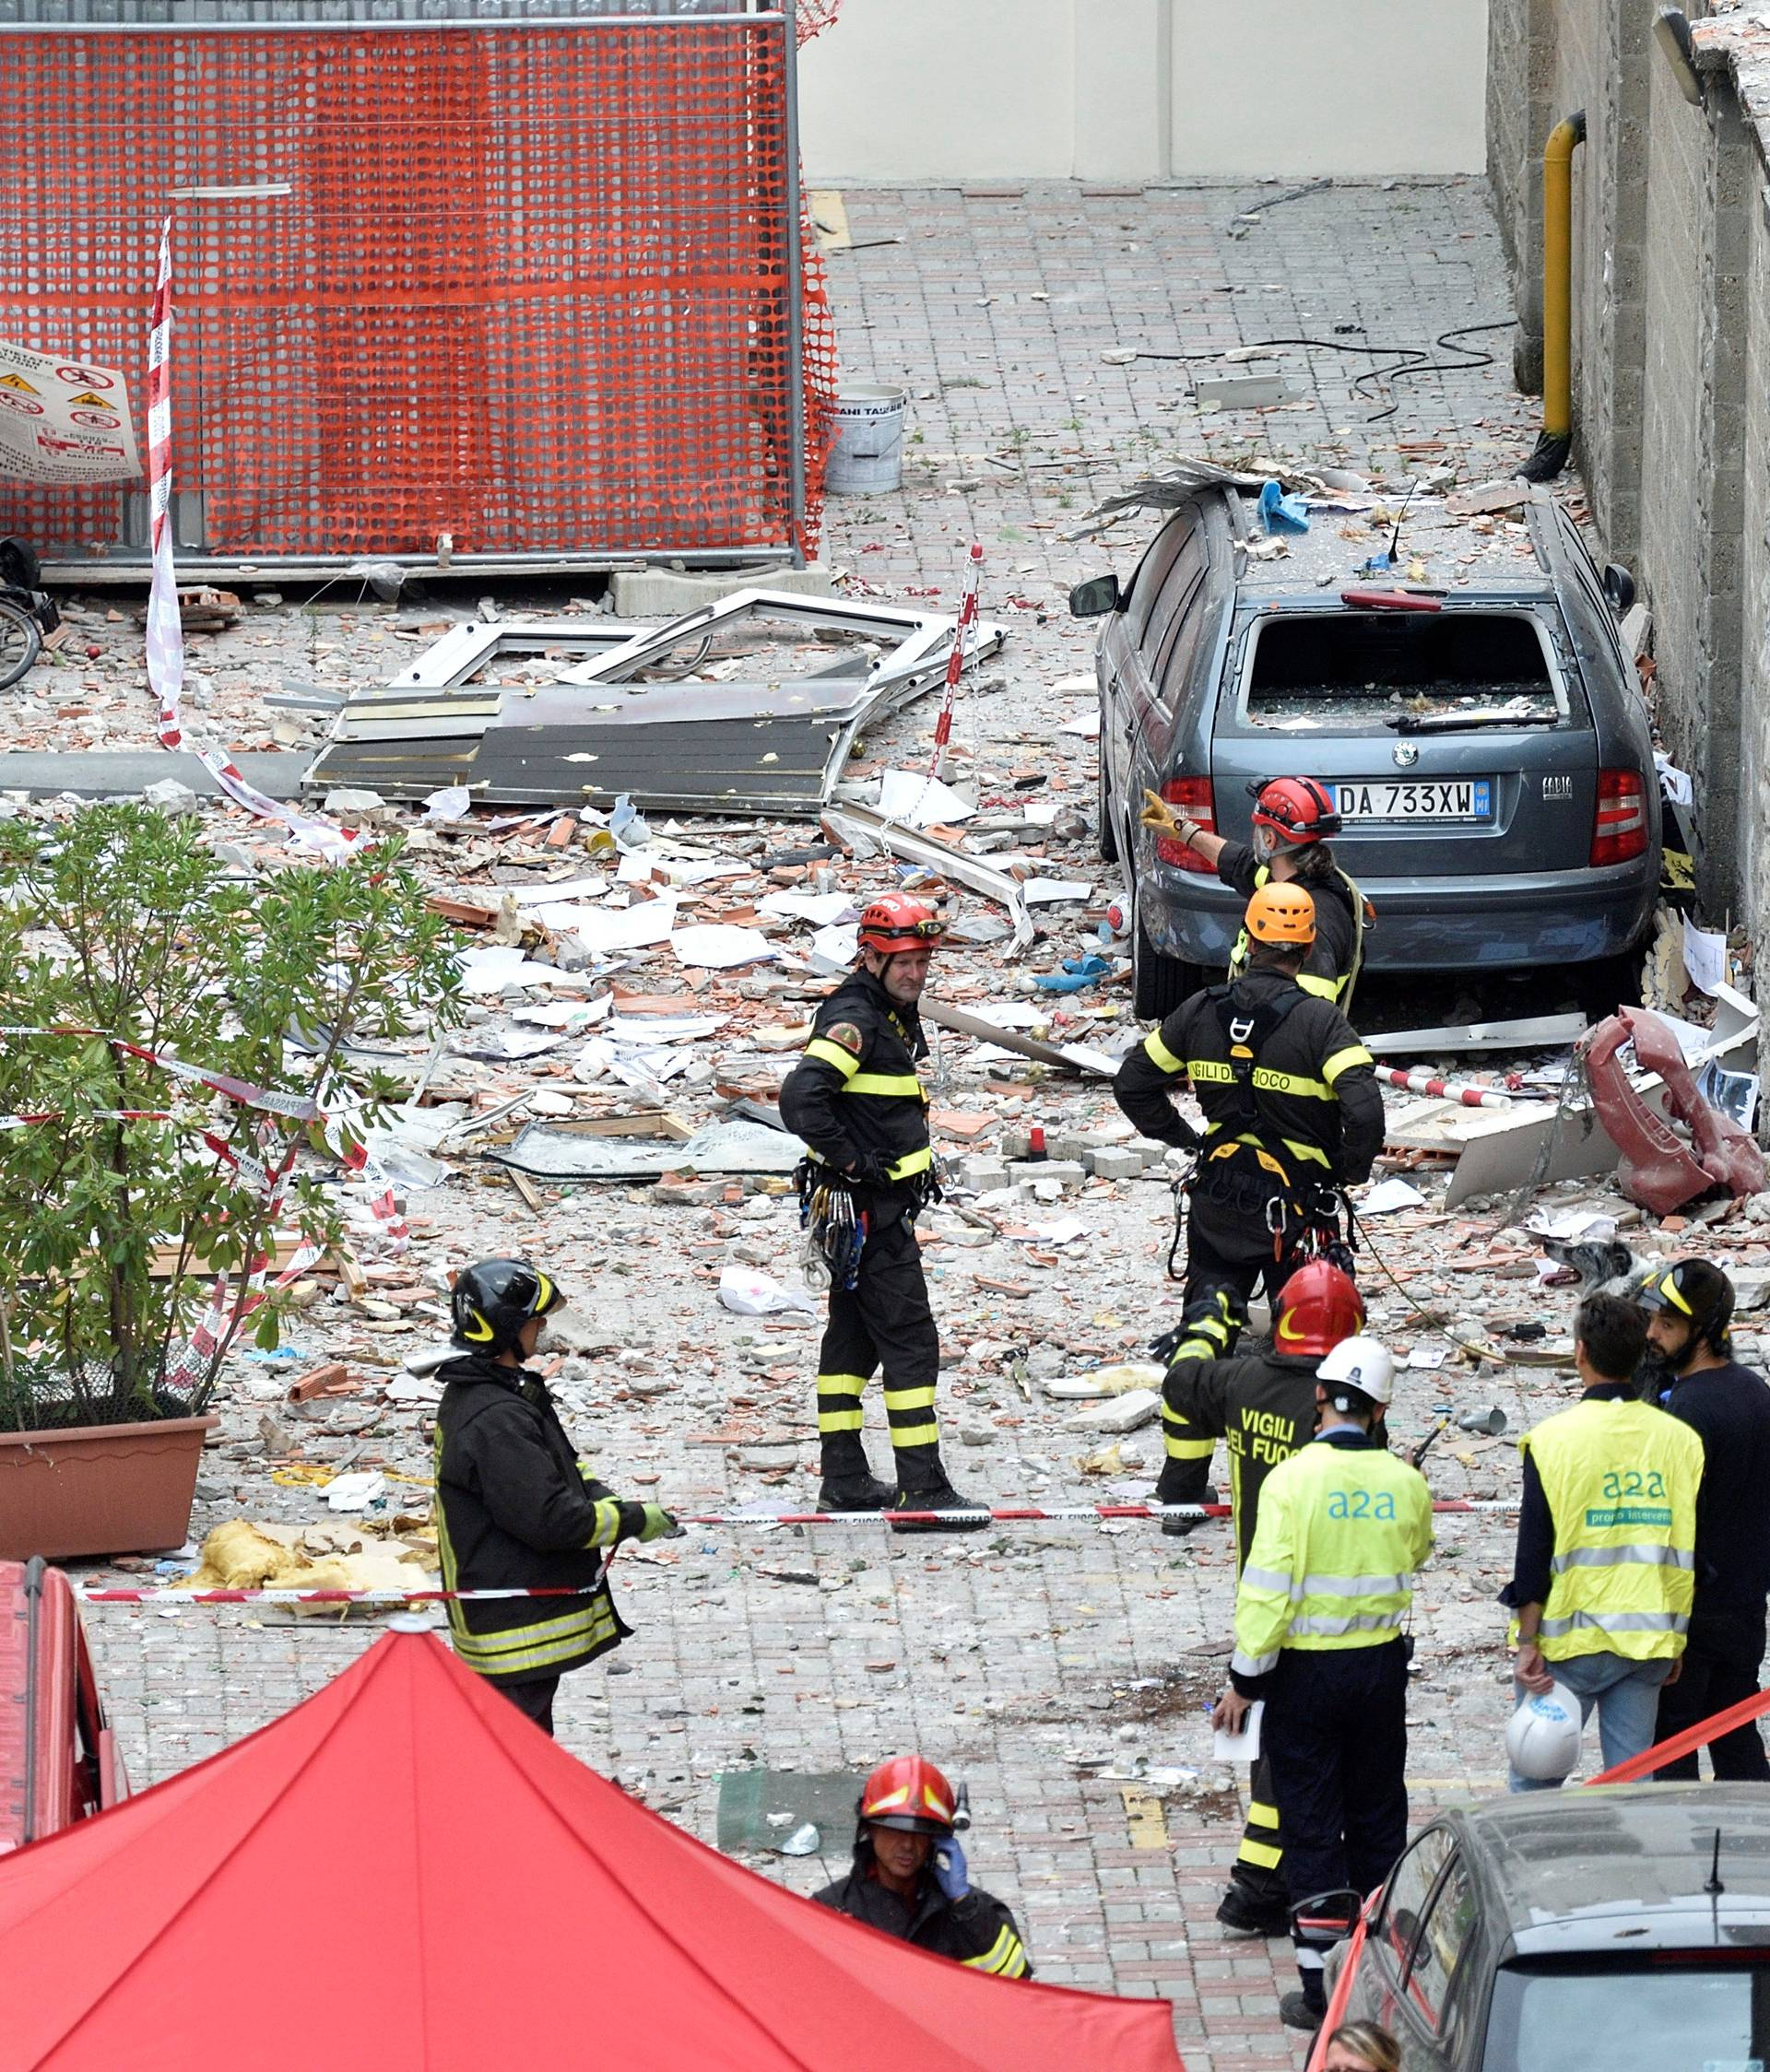 Italian firefighters work in the debris after a residential building partially collapsed on Sunday following an explosion in Milan